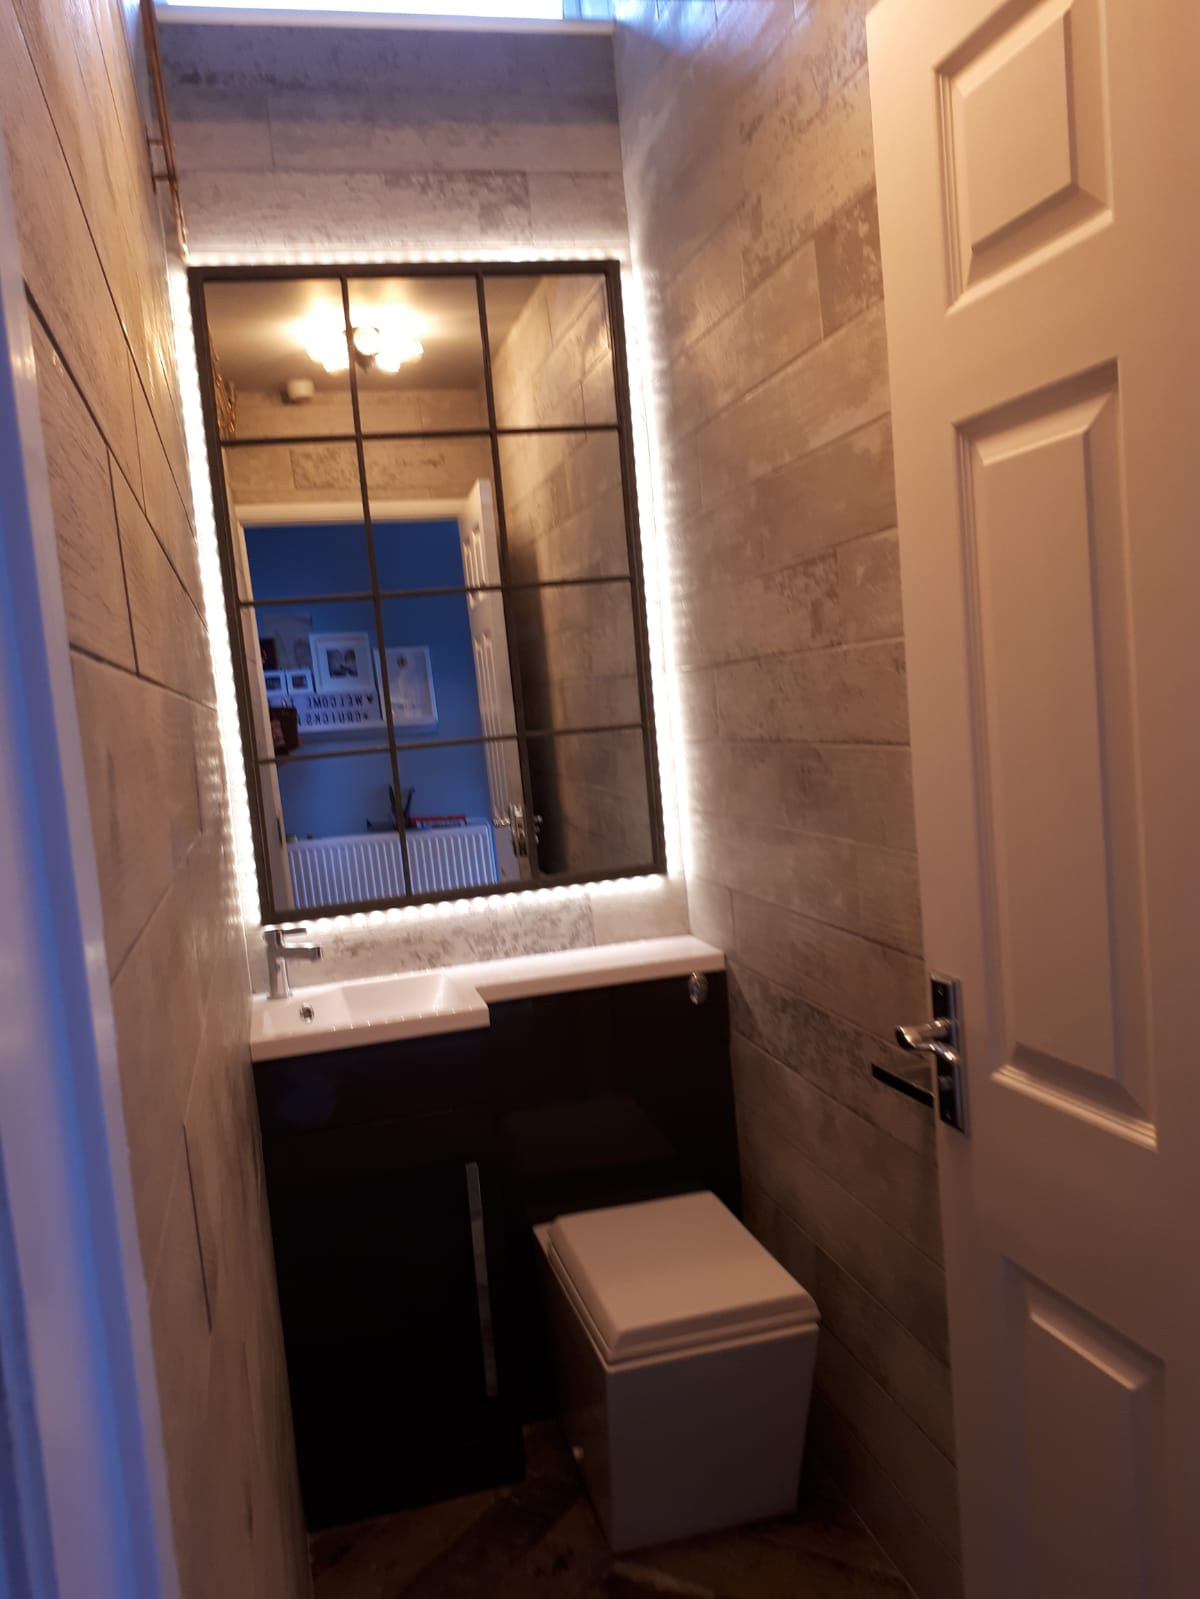 Cloakroom toilet and basin